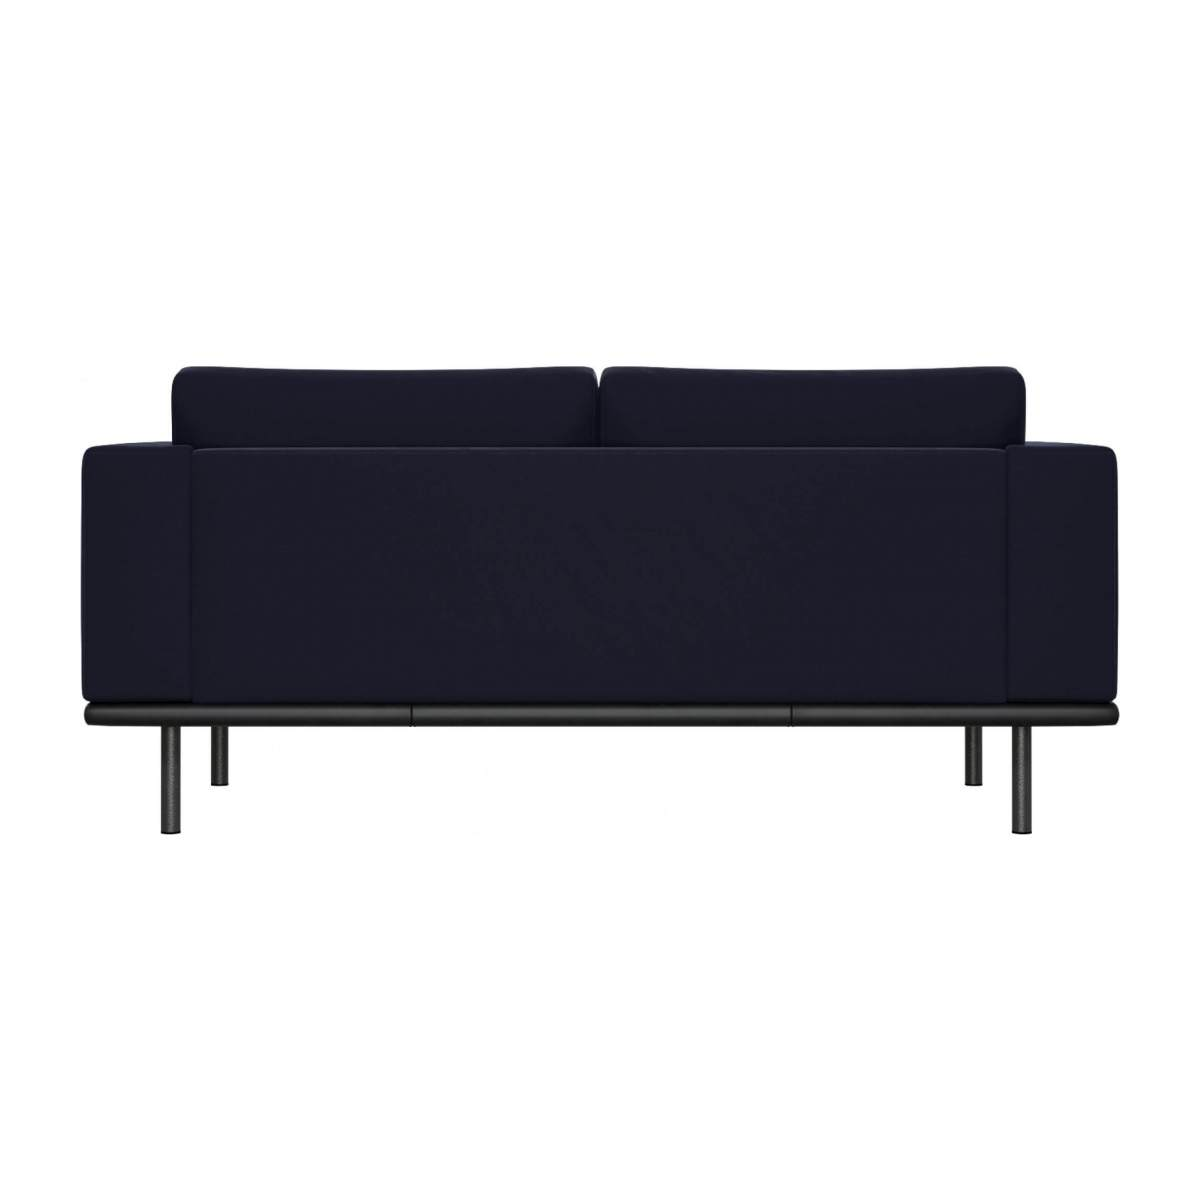 2 seater sofa in Super Velvet fabric, dark blue with base in black leather n°4